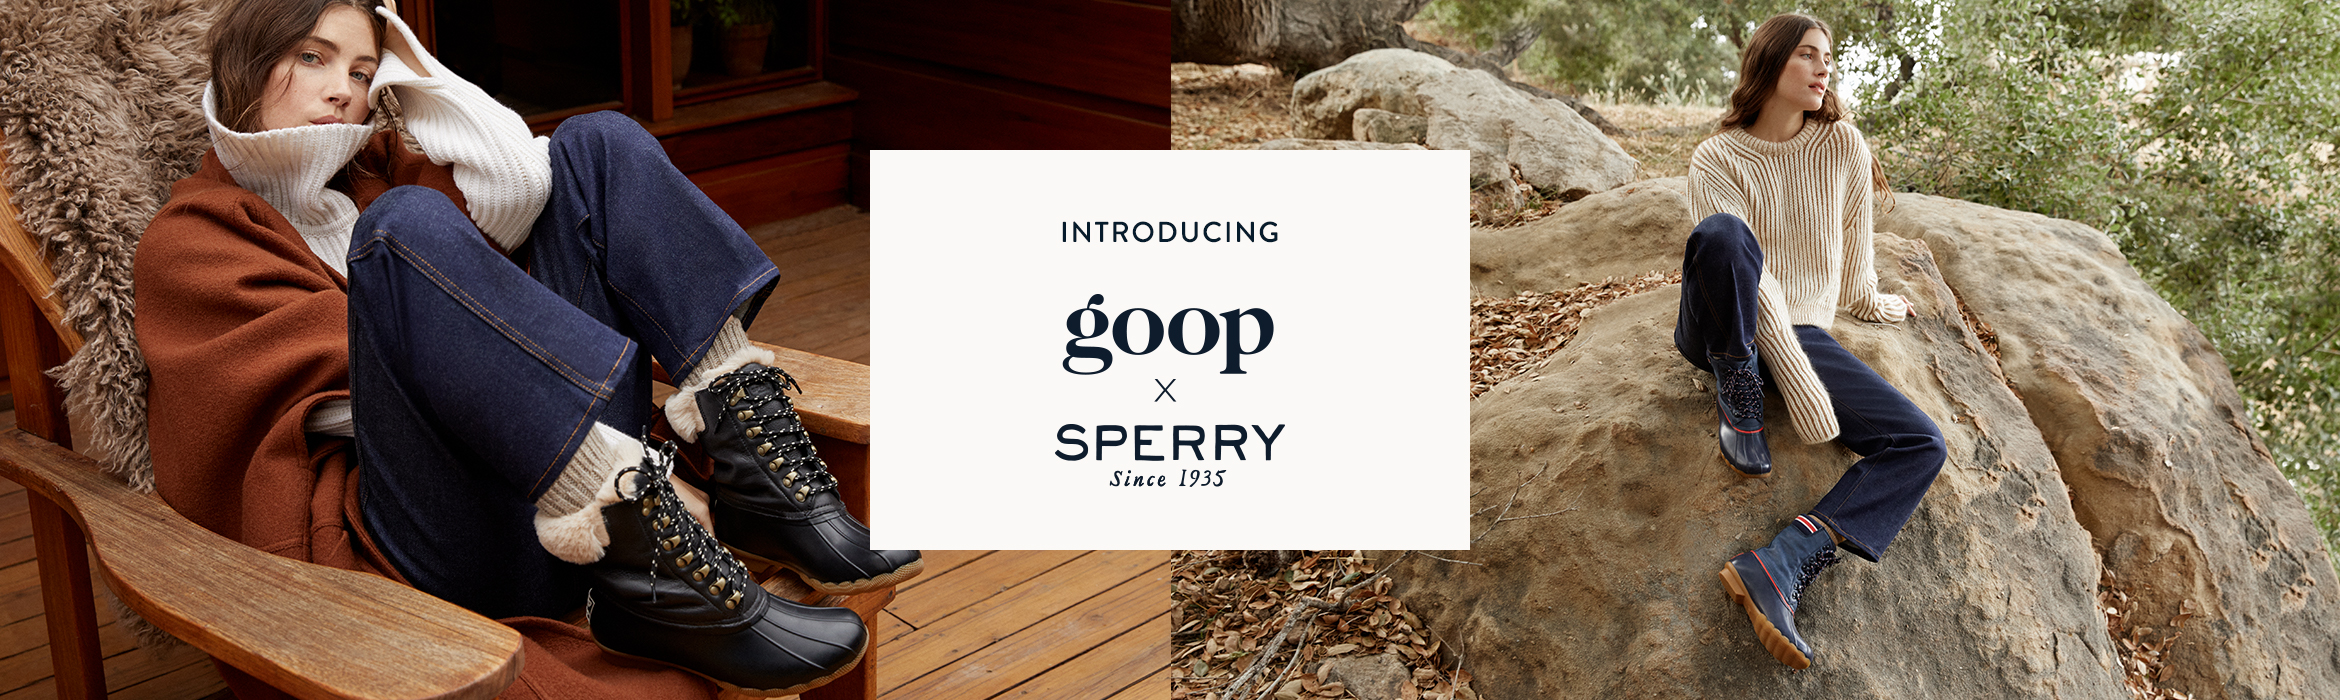 Introducing Goop & Sperry